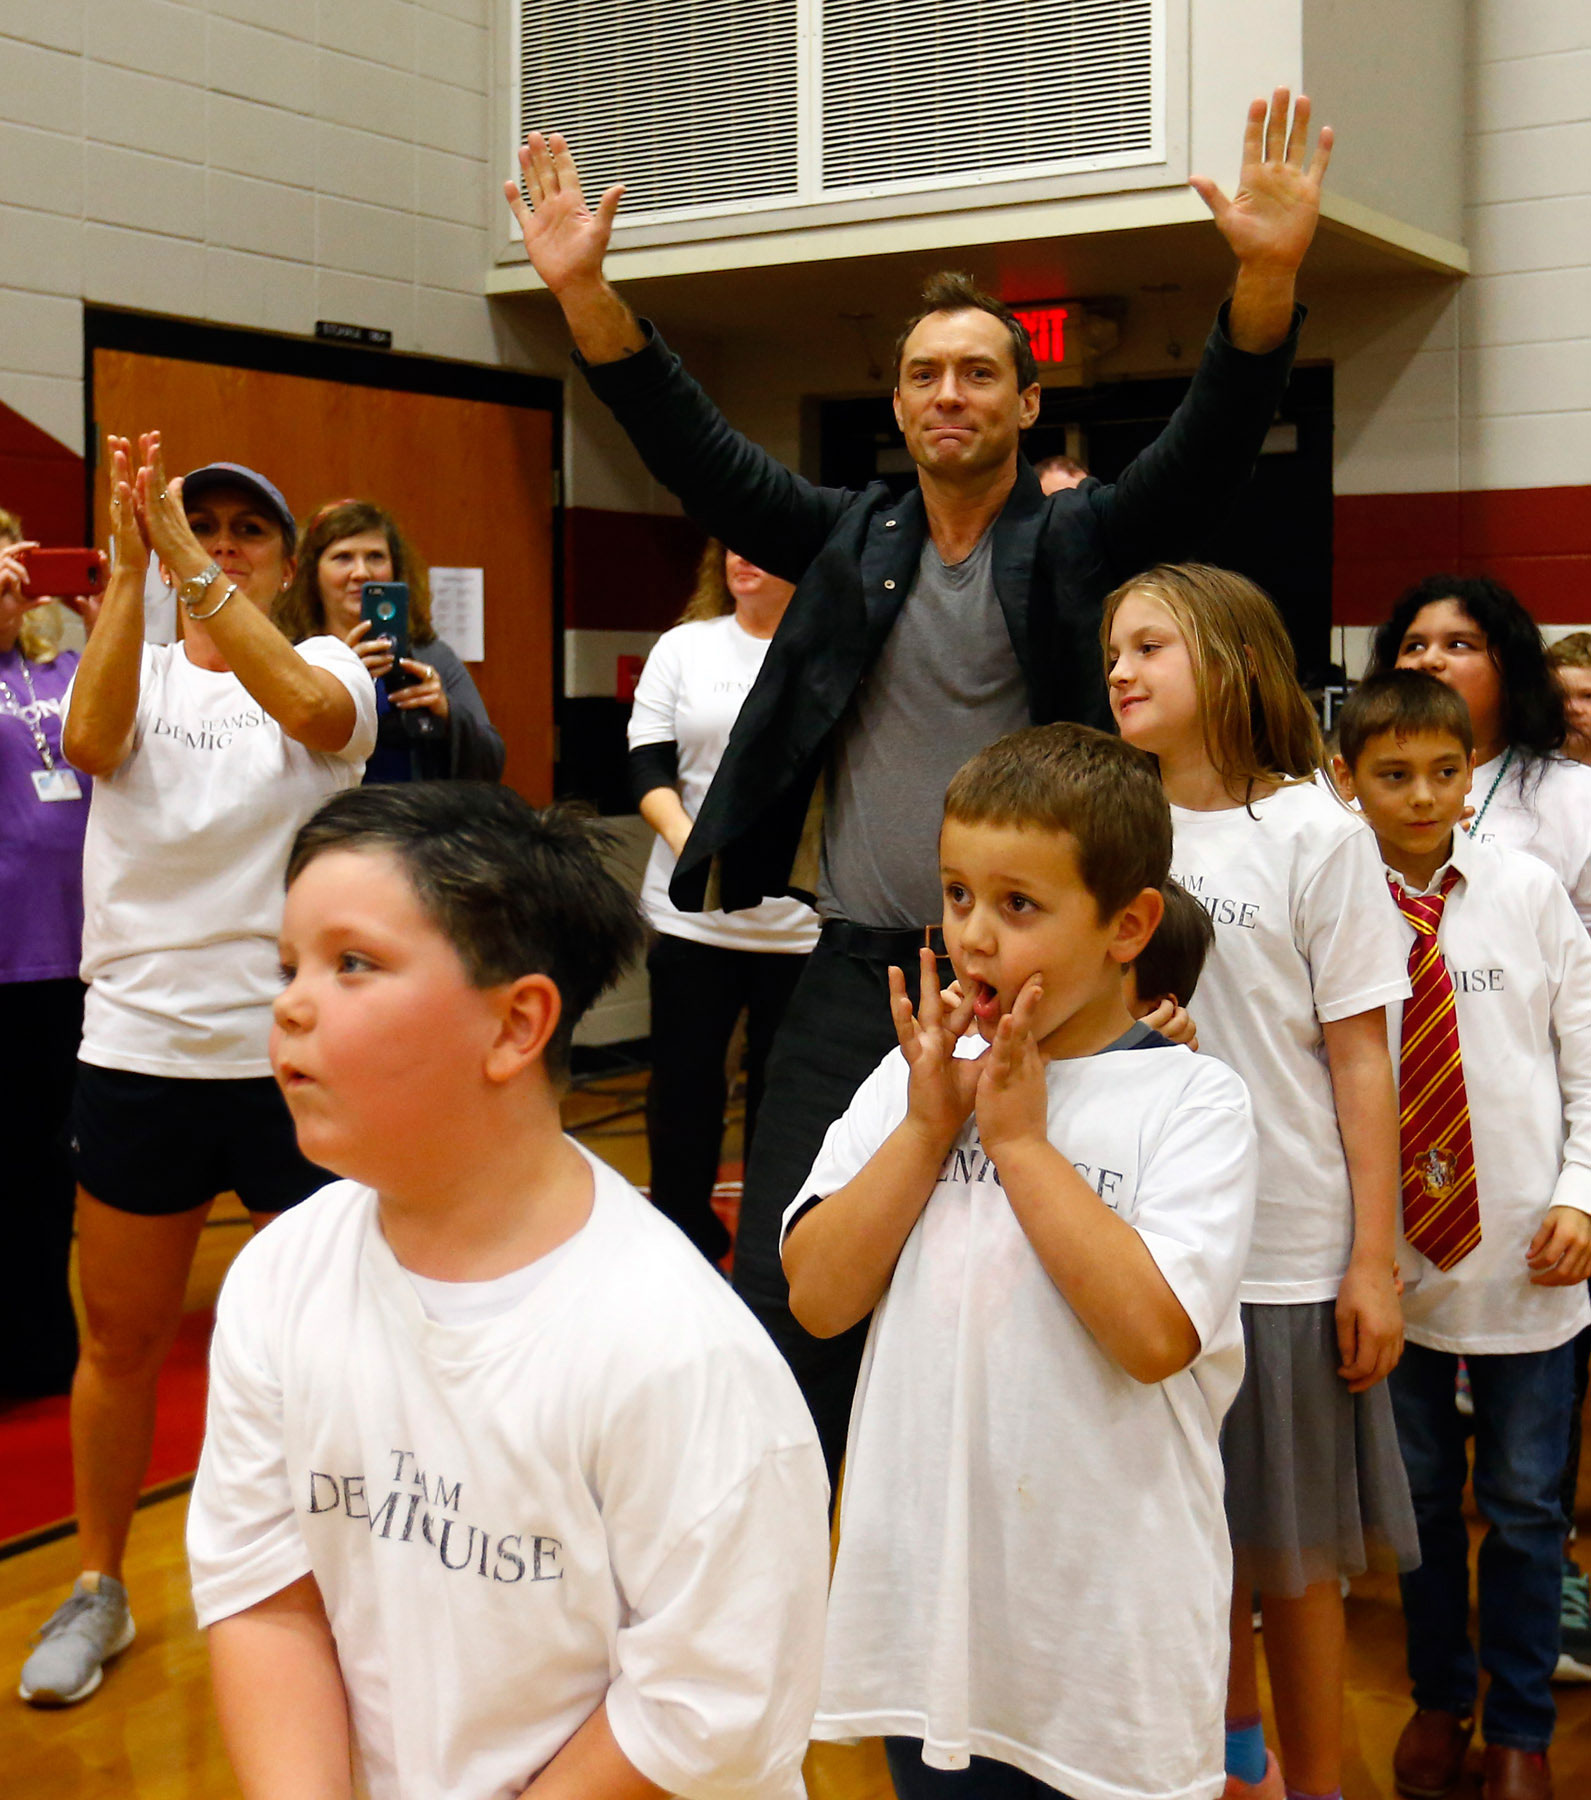 """Jude Law from """"Fantastic Beasts: The Crimes of Grindelwald"""" celebrates Wizarding World Day at Parkside Middle School in Baileyton, AL.  (Photo by Butch Dill/Getty Images)"""